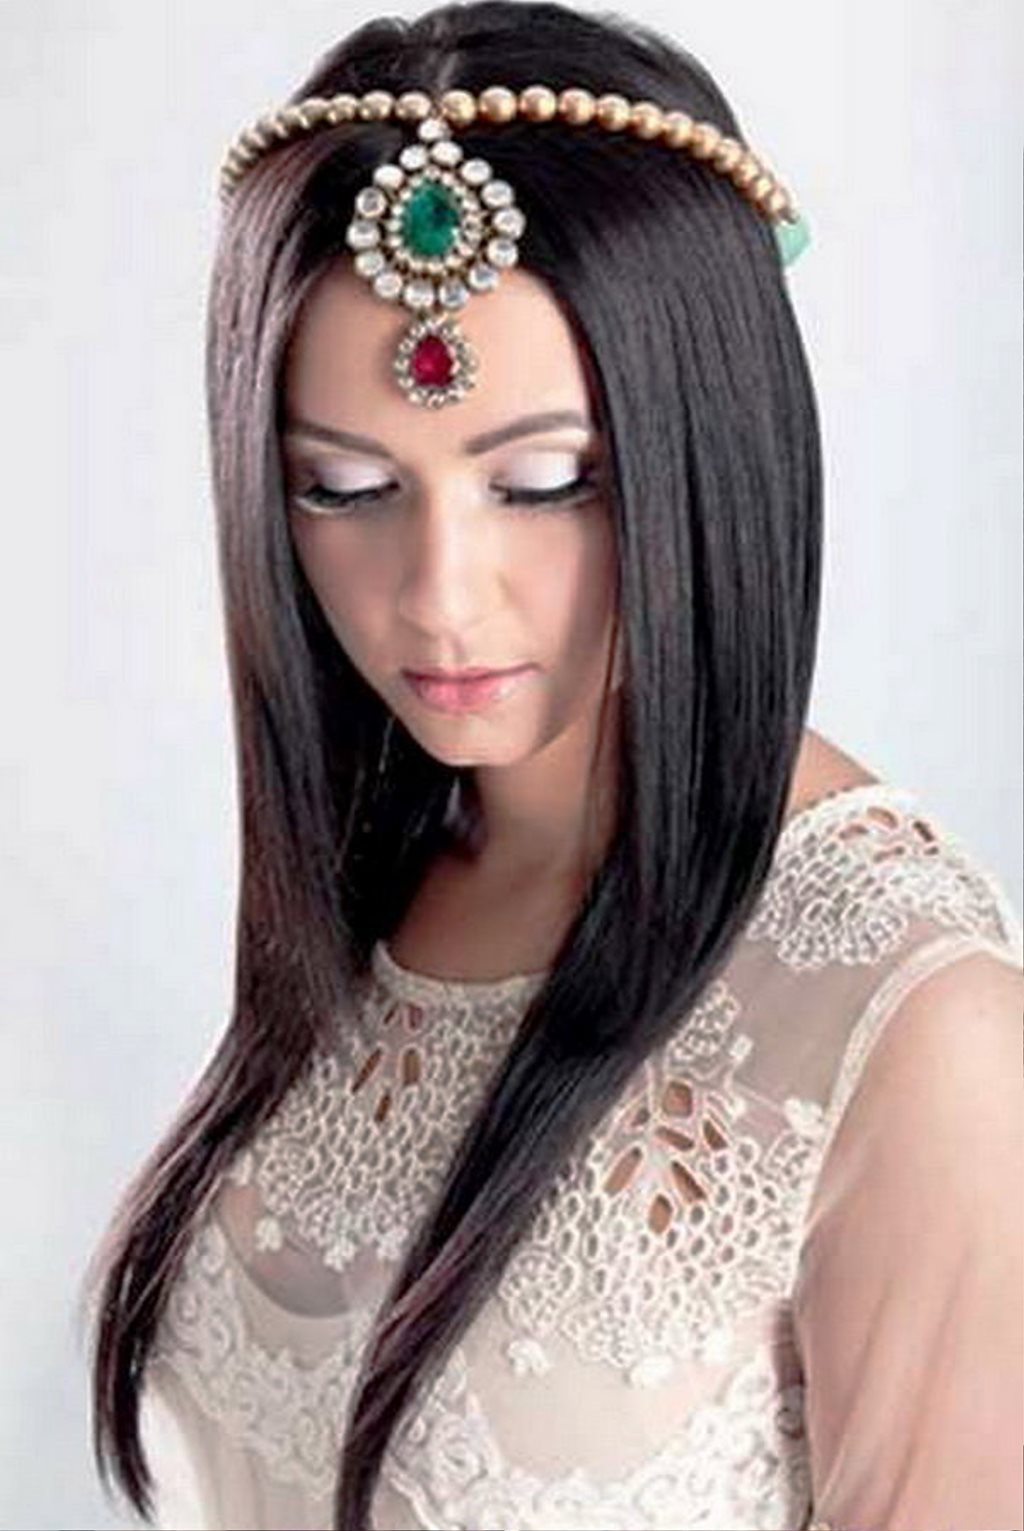 Phenomenal Pictures Of Bridal Hairstyles 2013 For Long Black Hair Hairstyles For Men Maxibearus